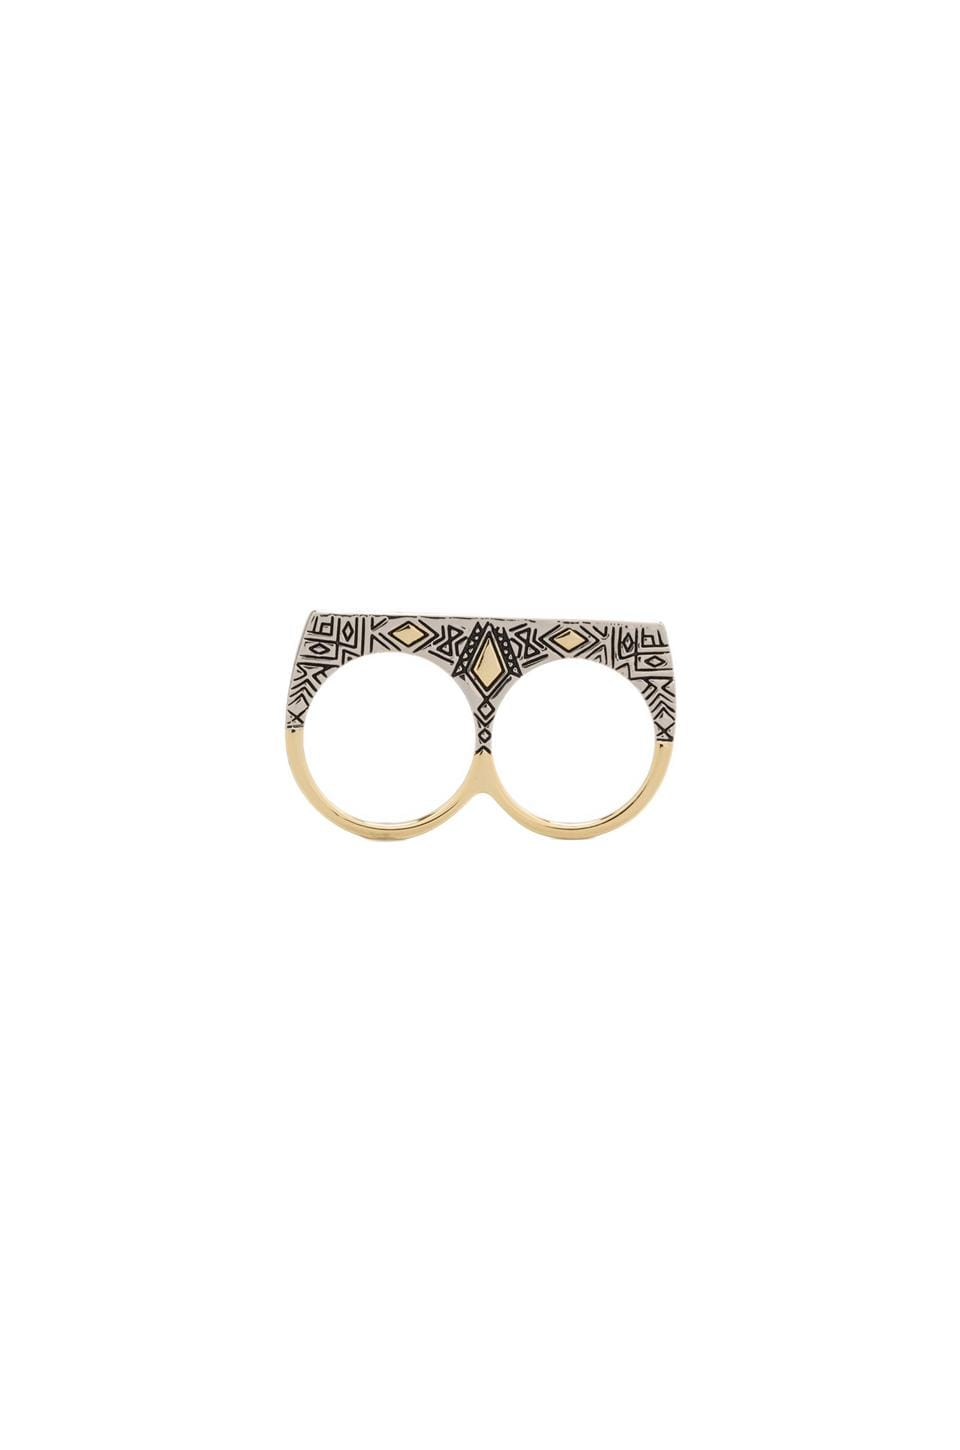 House of Harlow 1960 House of Harlow Engraved Kilim Sliver Ring in Two Tone